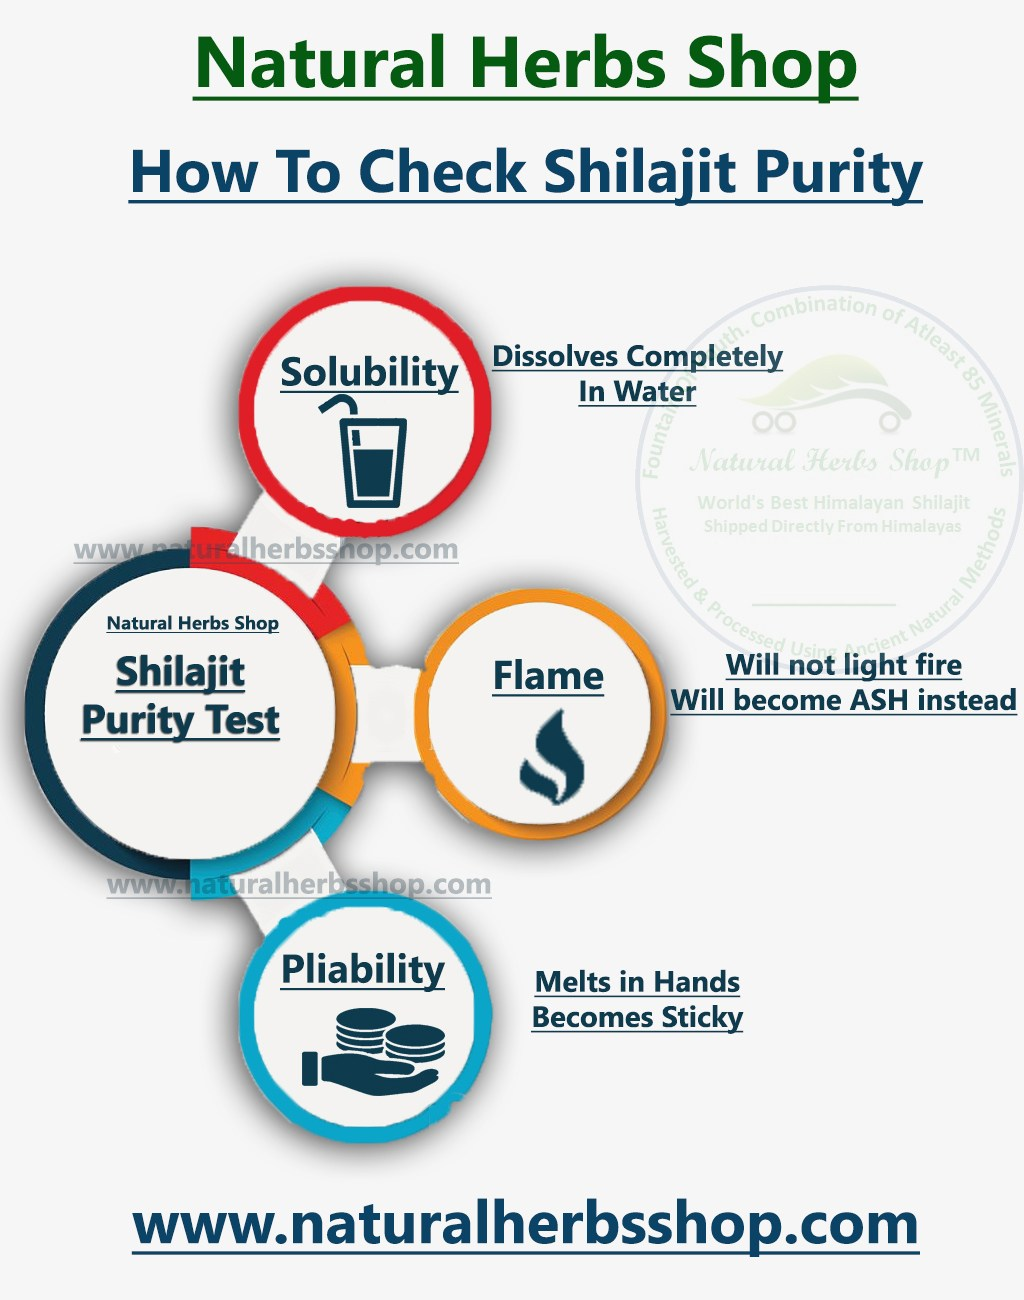 Shilajit Purity Check